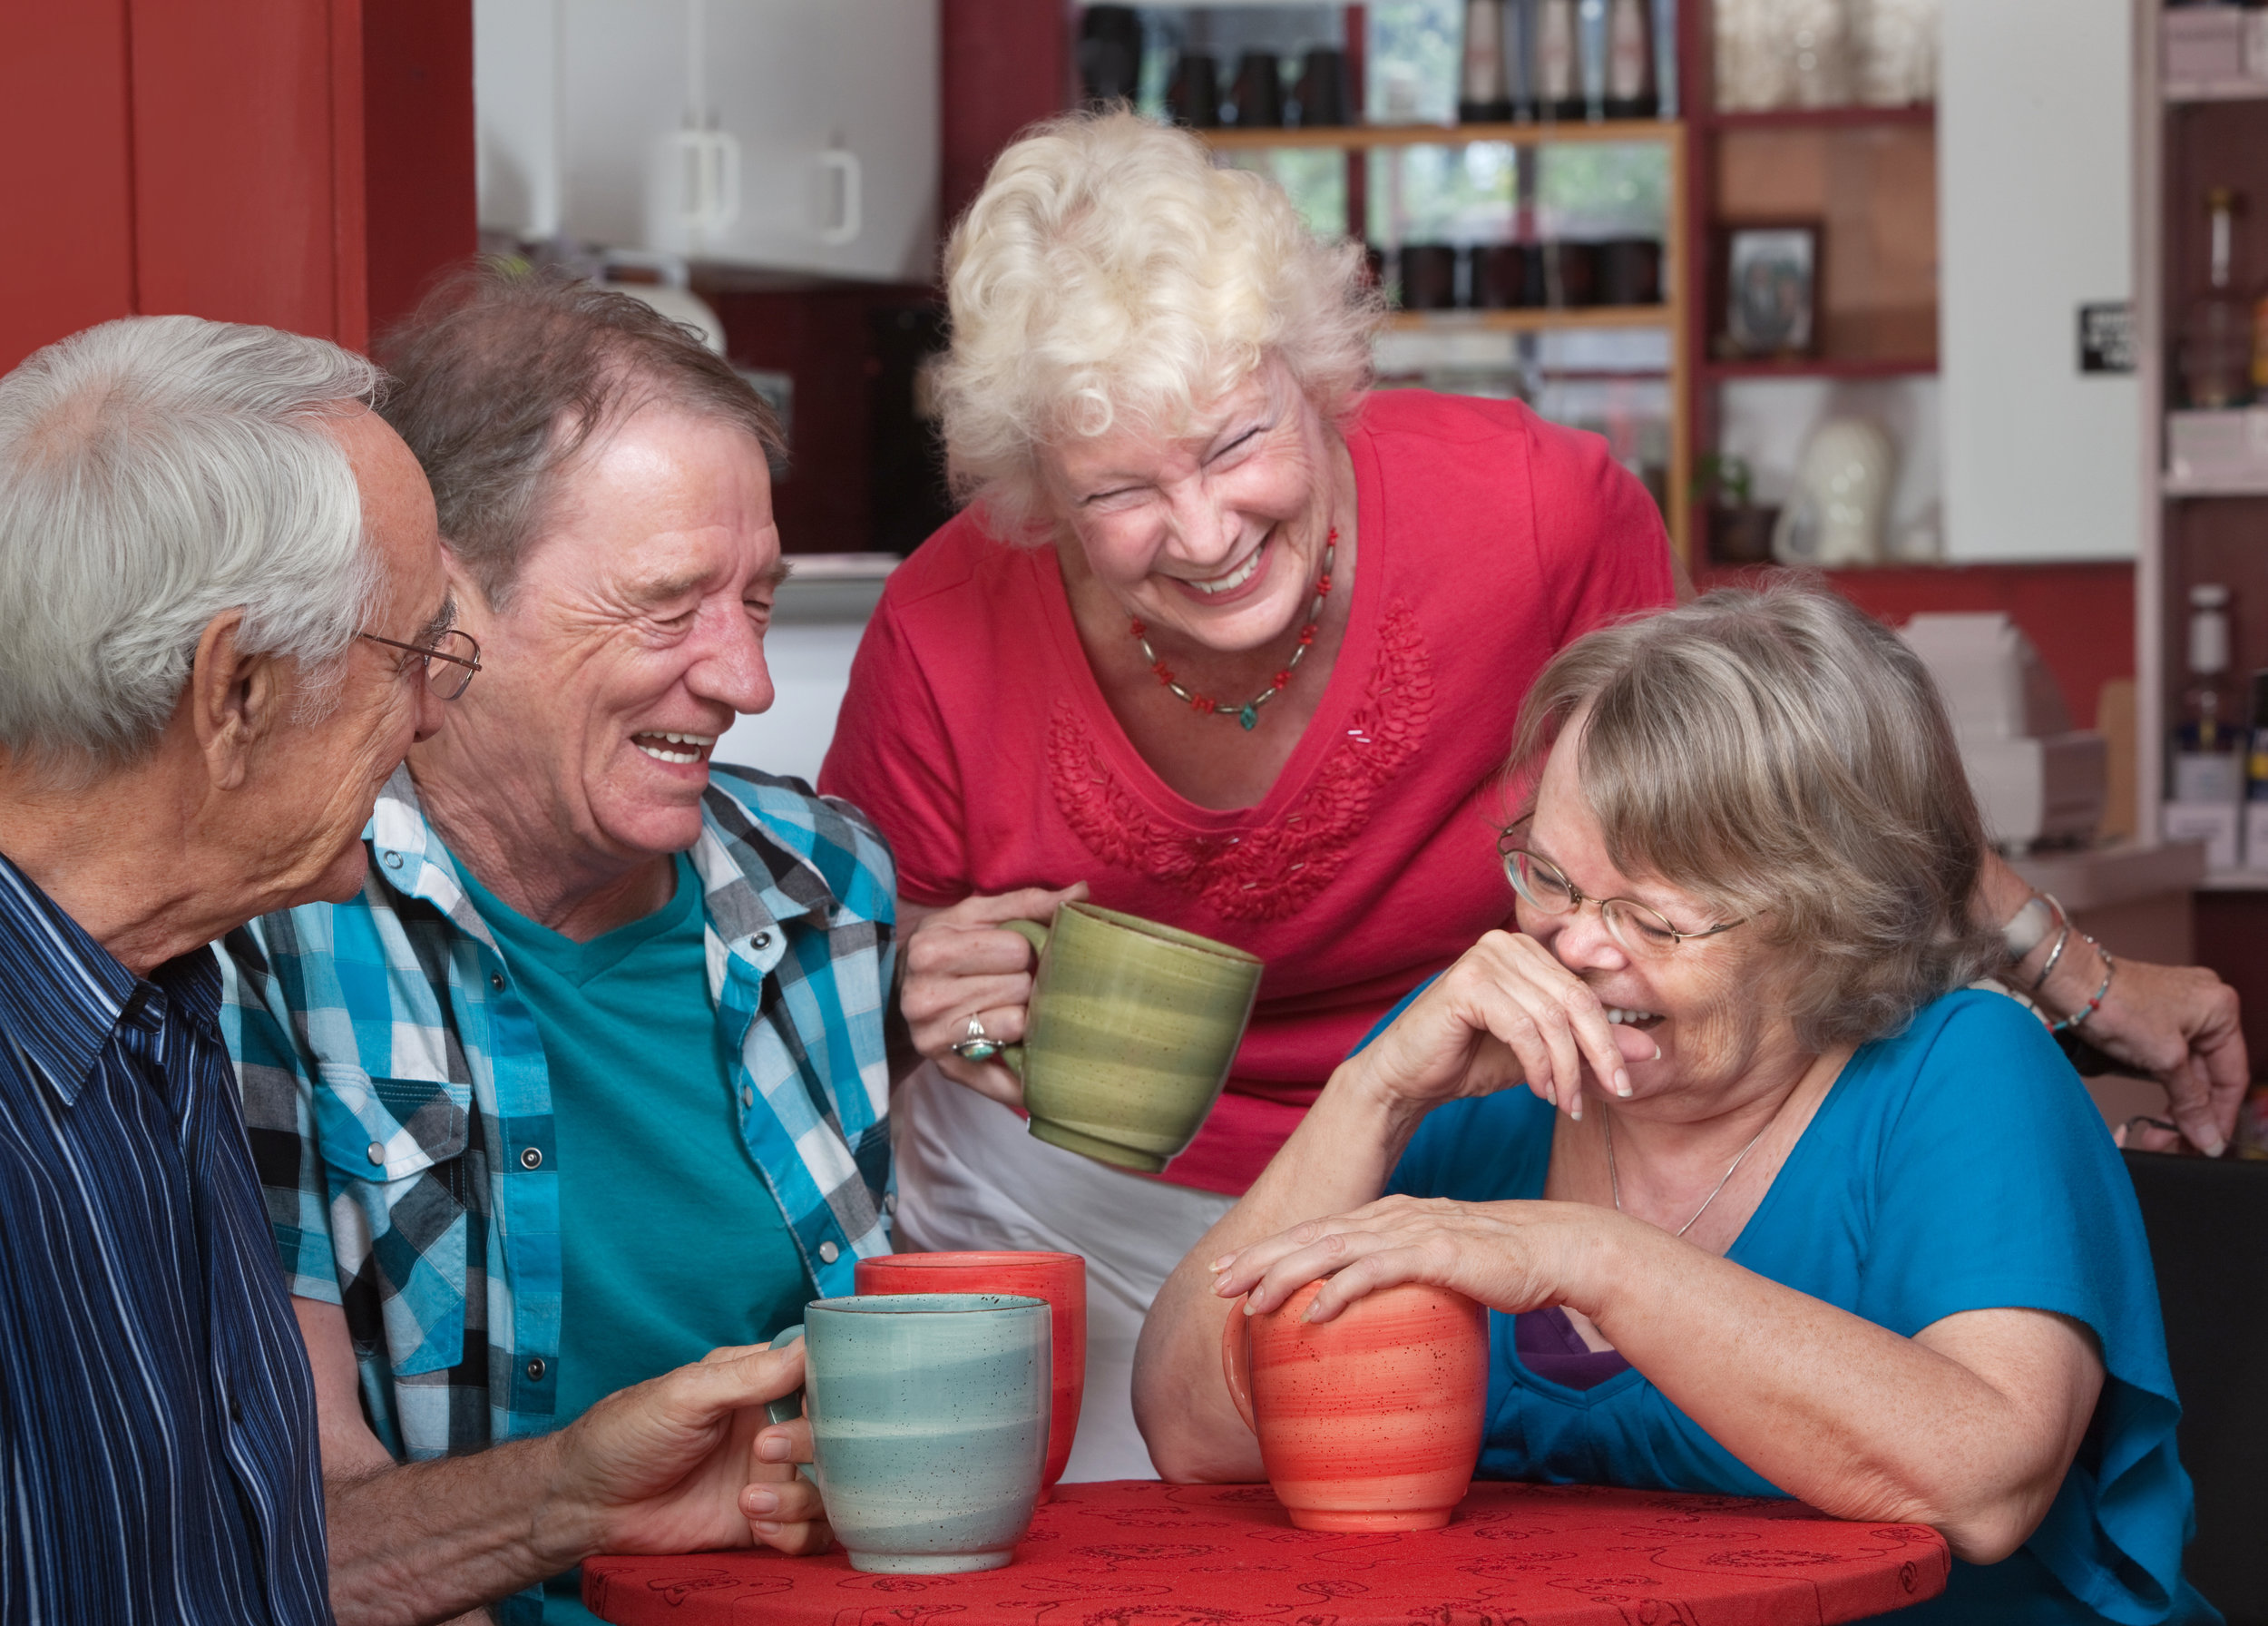 Practicing talking and interacting with others, as long as everyone's patient, can be some of the best communication therapy and is a great way to practice your skills.